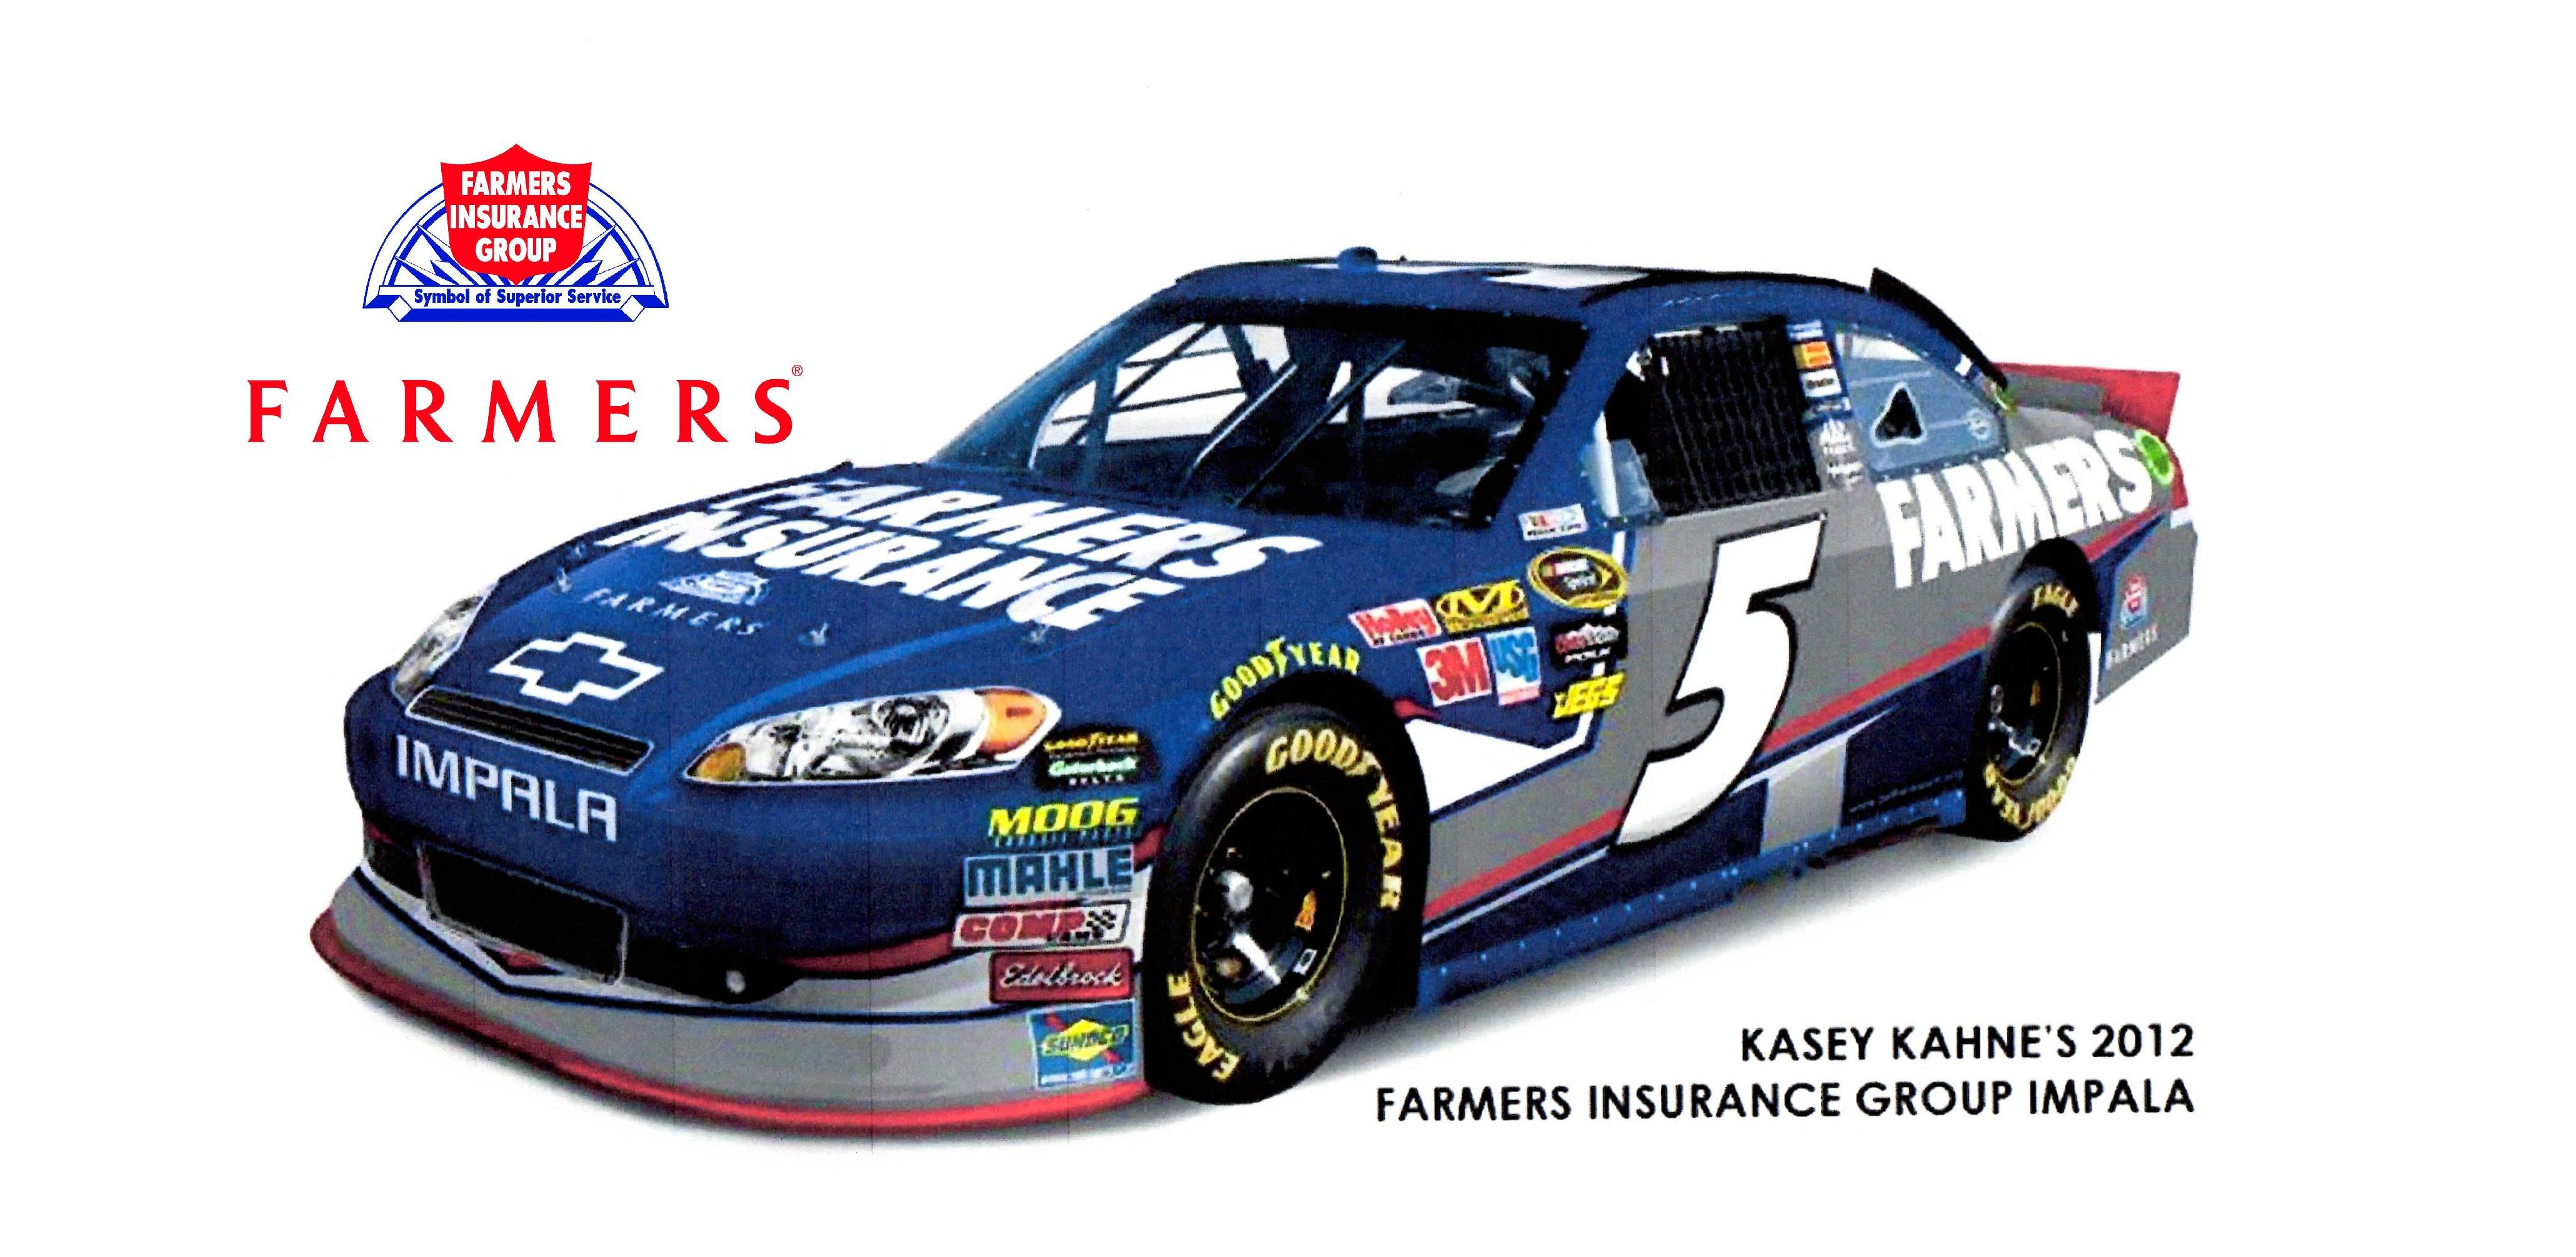 Farmers Insurance Westlake Village  Affordable Car Insurance. Online Fax Free Trial No Credit Card. Reman Toner Cartridges Carpet Cleaning Barrie. Online Marketing Consultation. Green Juice Recipes For Weight Loss. Canton Dental Collaborative Sell My Annuity. Motorcycle Training Pa What Is Allergy Season. Credit Repair Law Firms Dodge Financing Rates. Garage Door Repair Greenville Sc